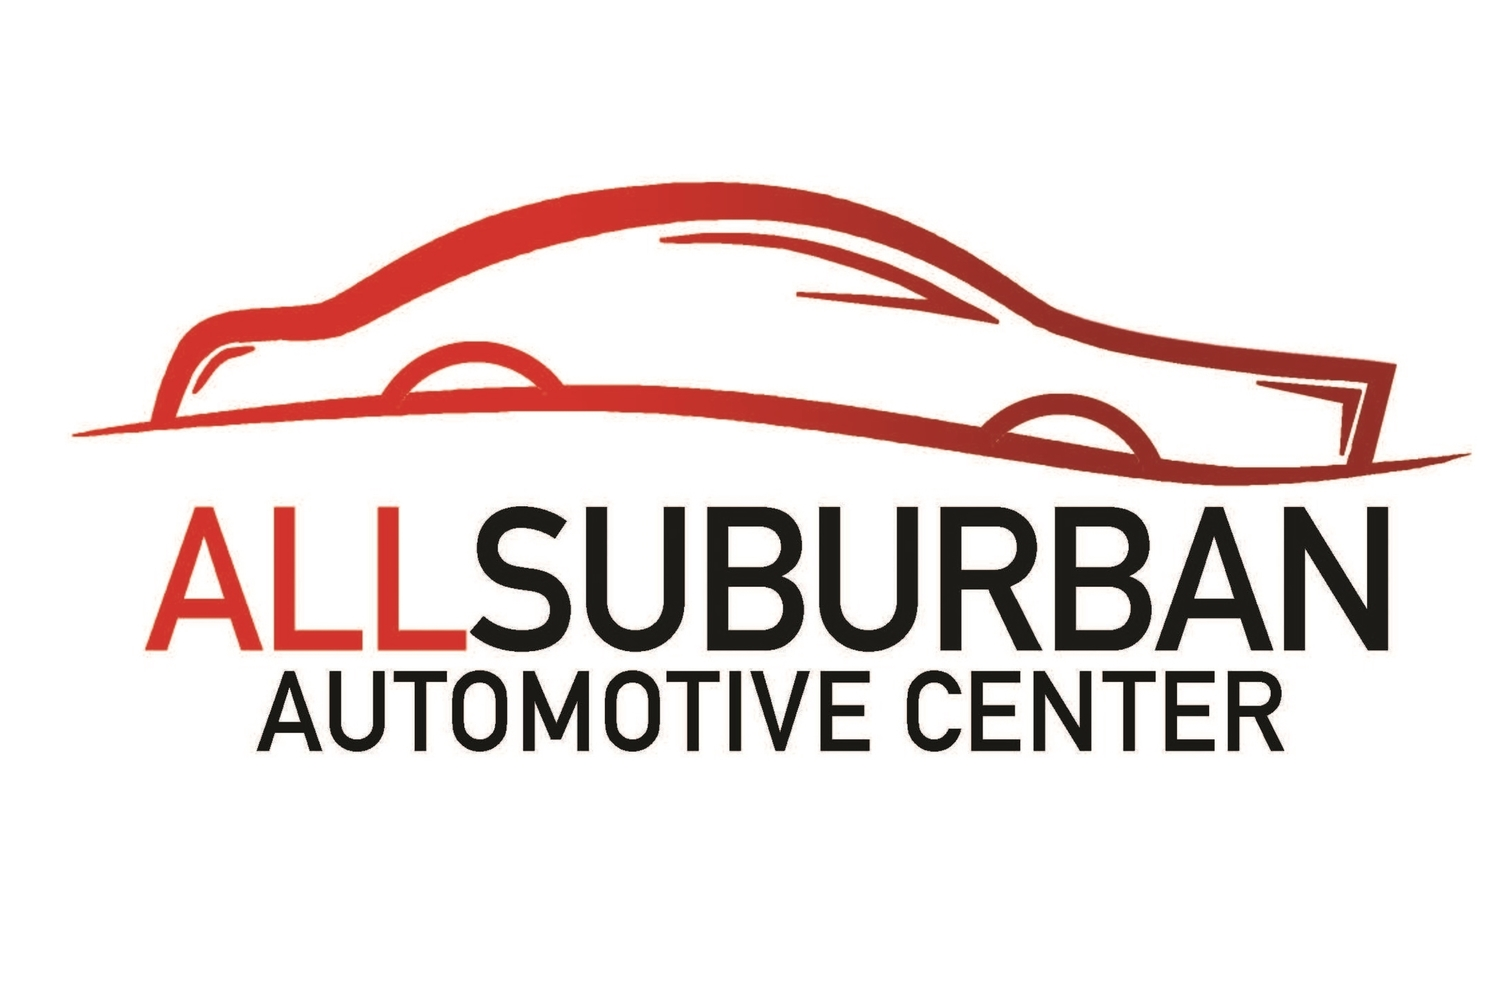 All Suburban Automotive Center